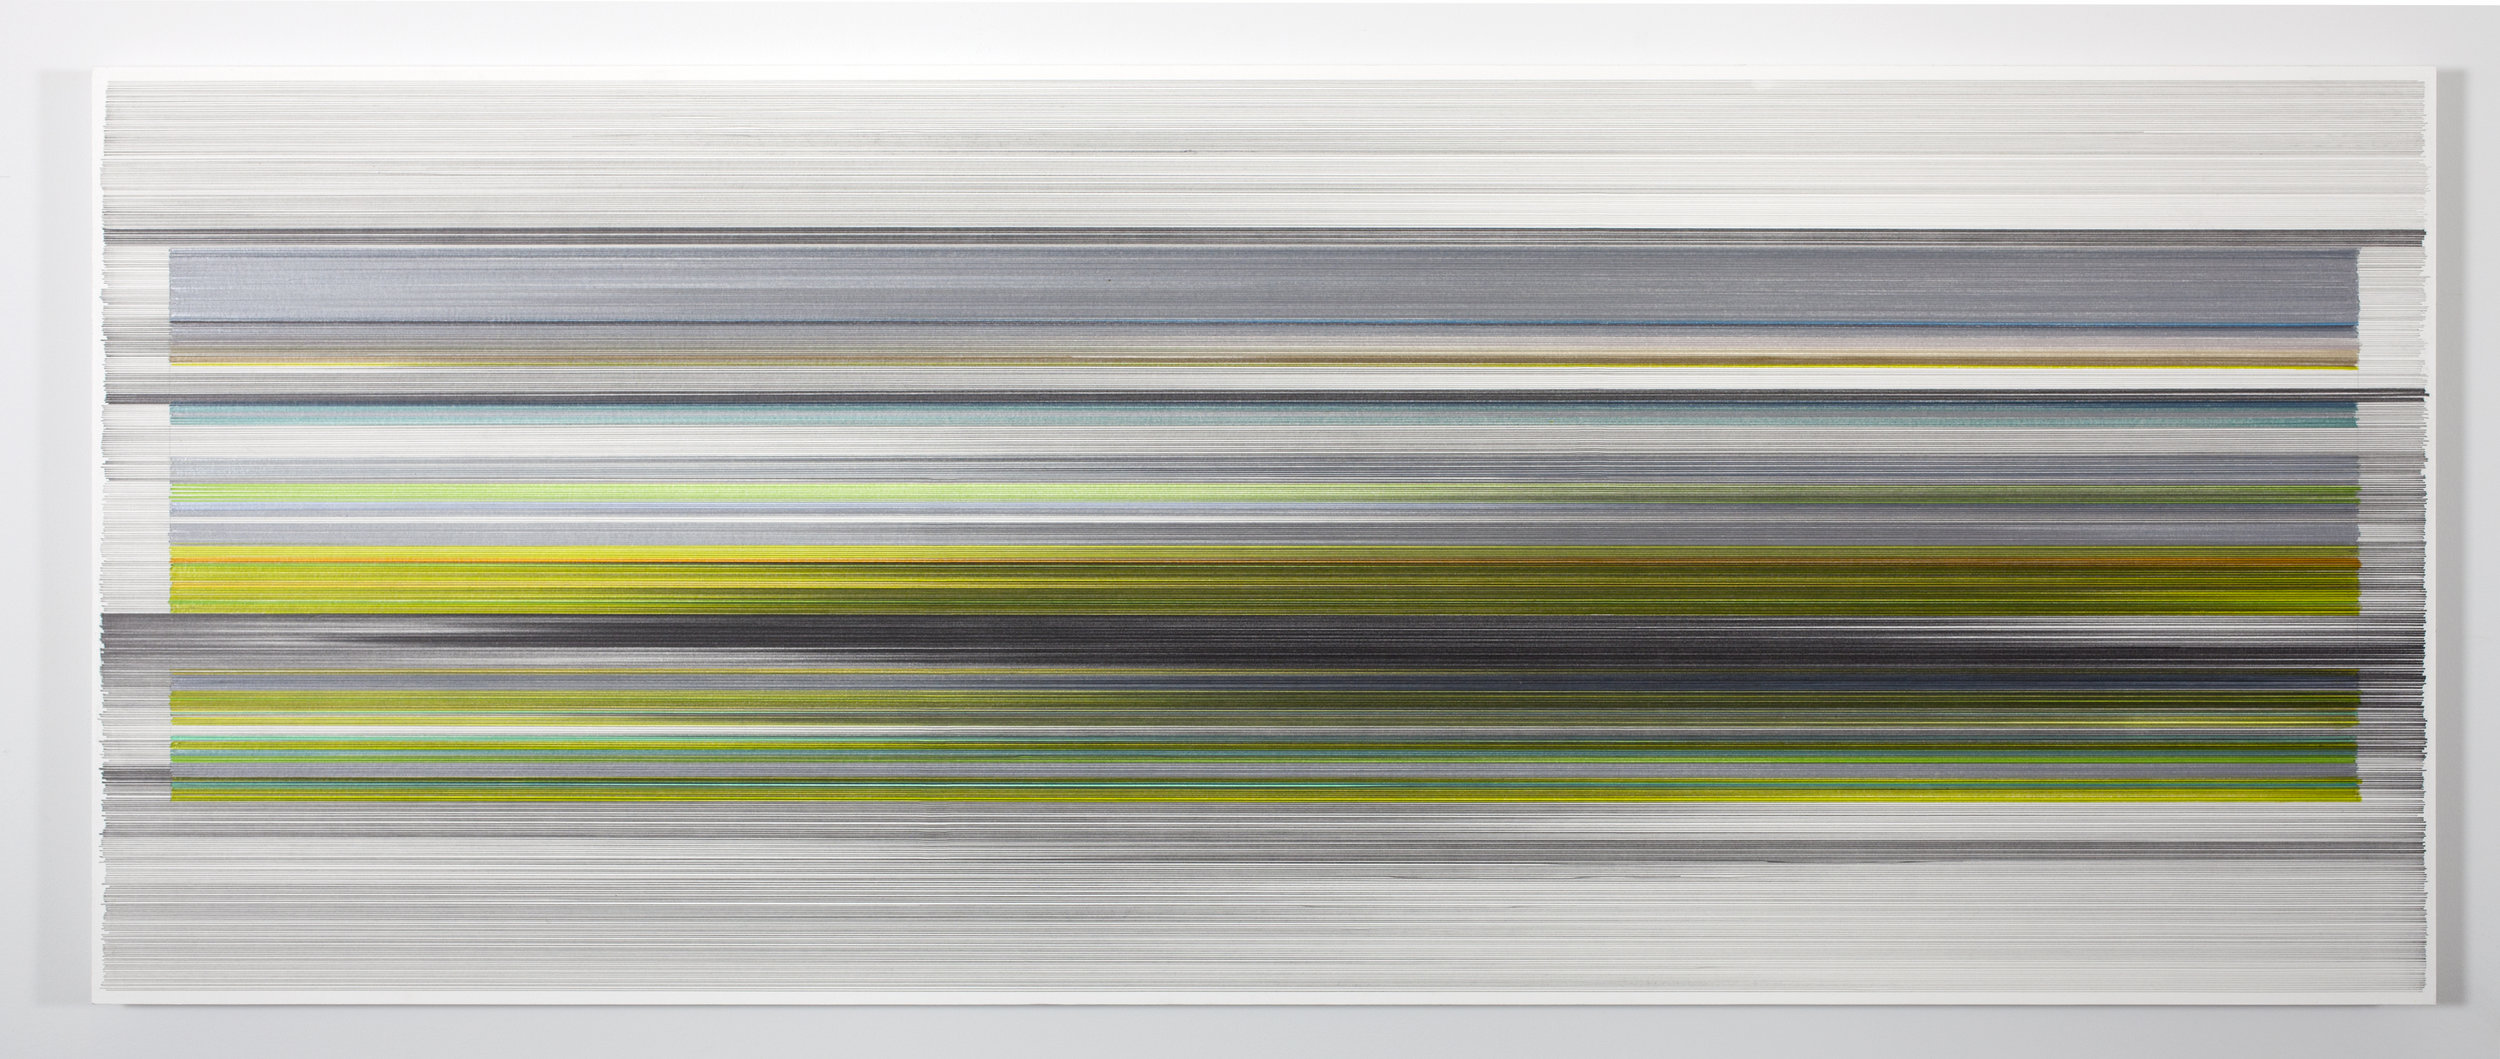 """Anne Lindberg, """"folding 03,"""" 2016, graphite & colored pencil on mat board, 24 by 60 inches"""